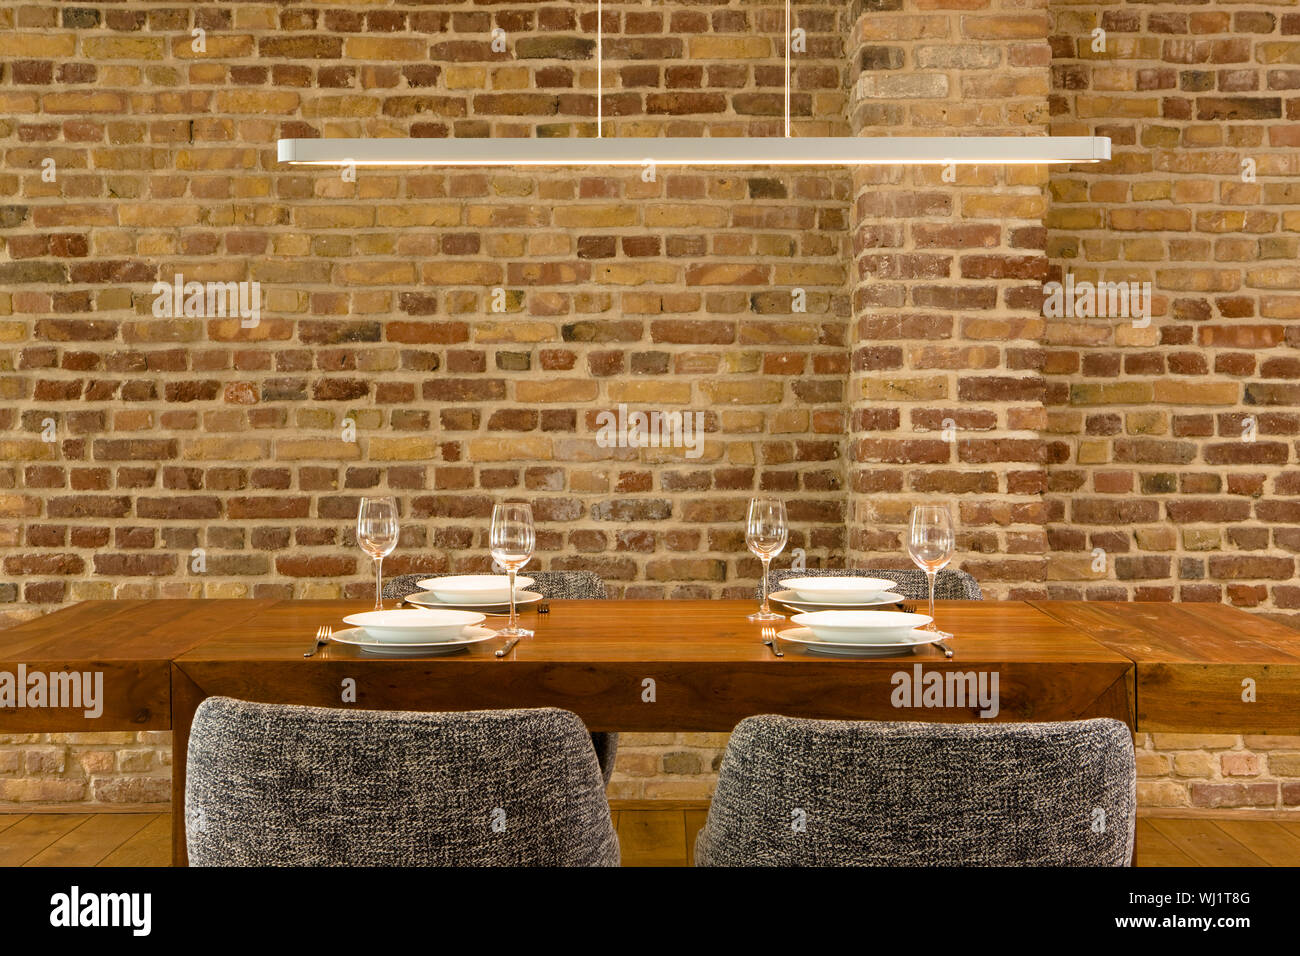 View Of Wineglasses And Plates On Dining Table Against Brick Wall In Modern House Stock Photo Alamy